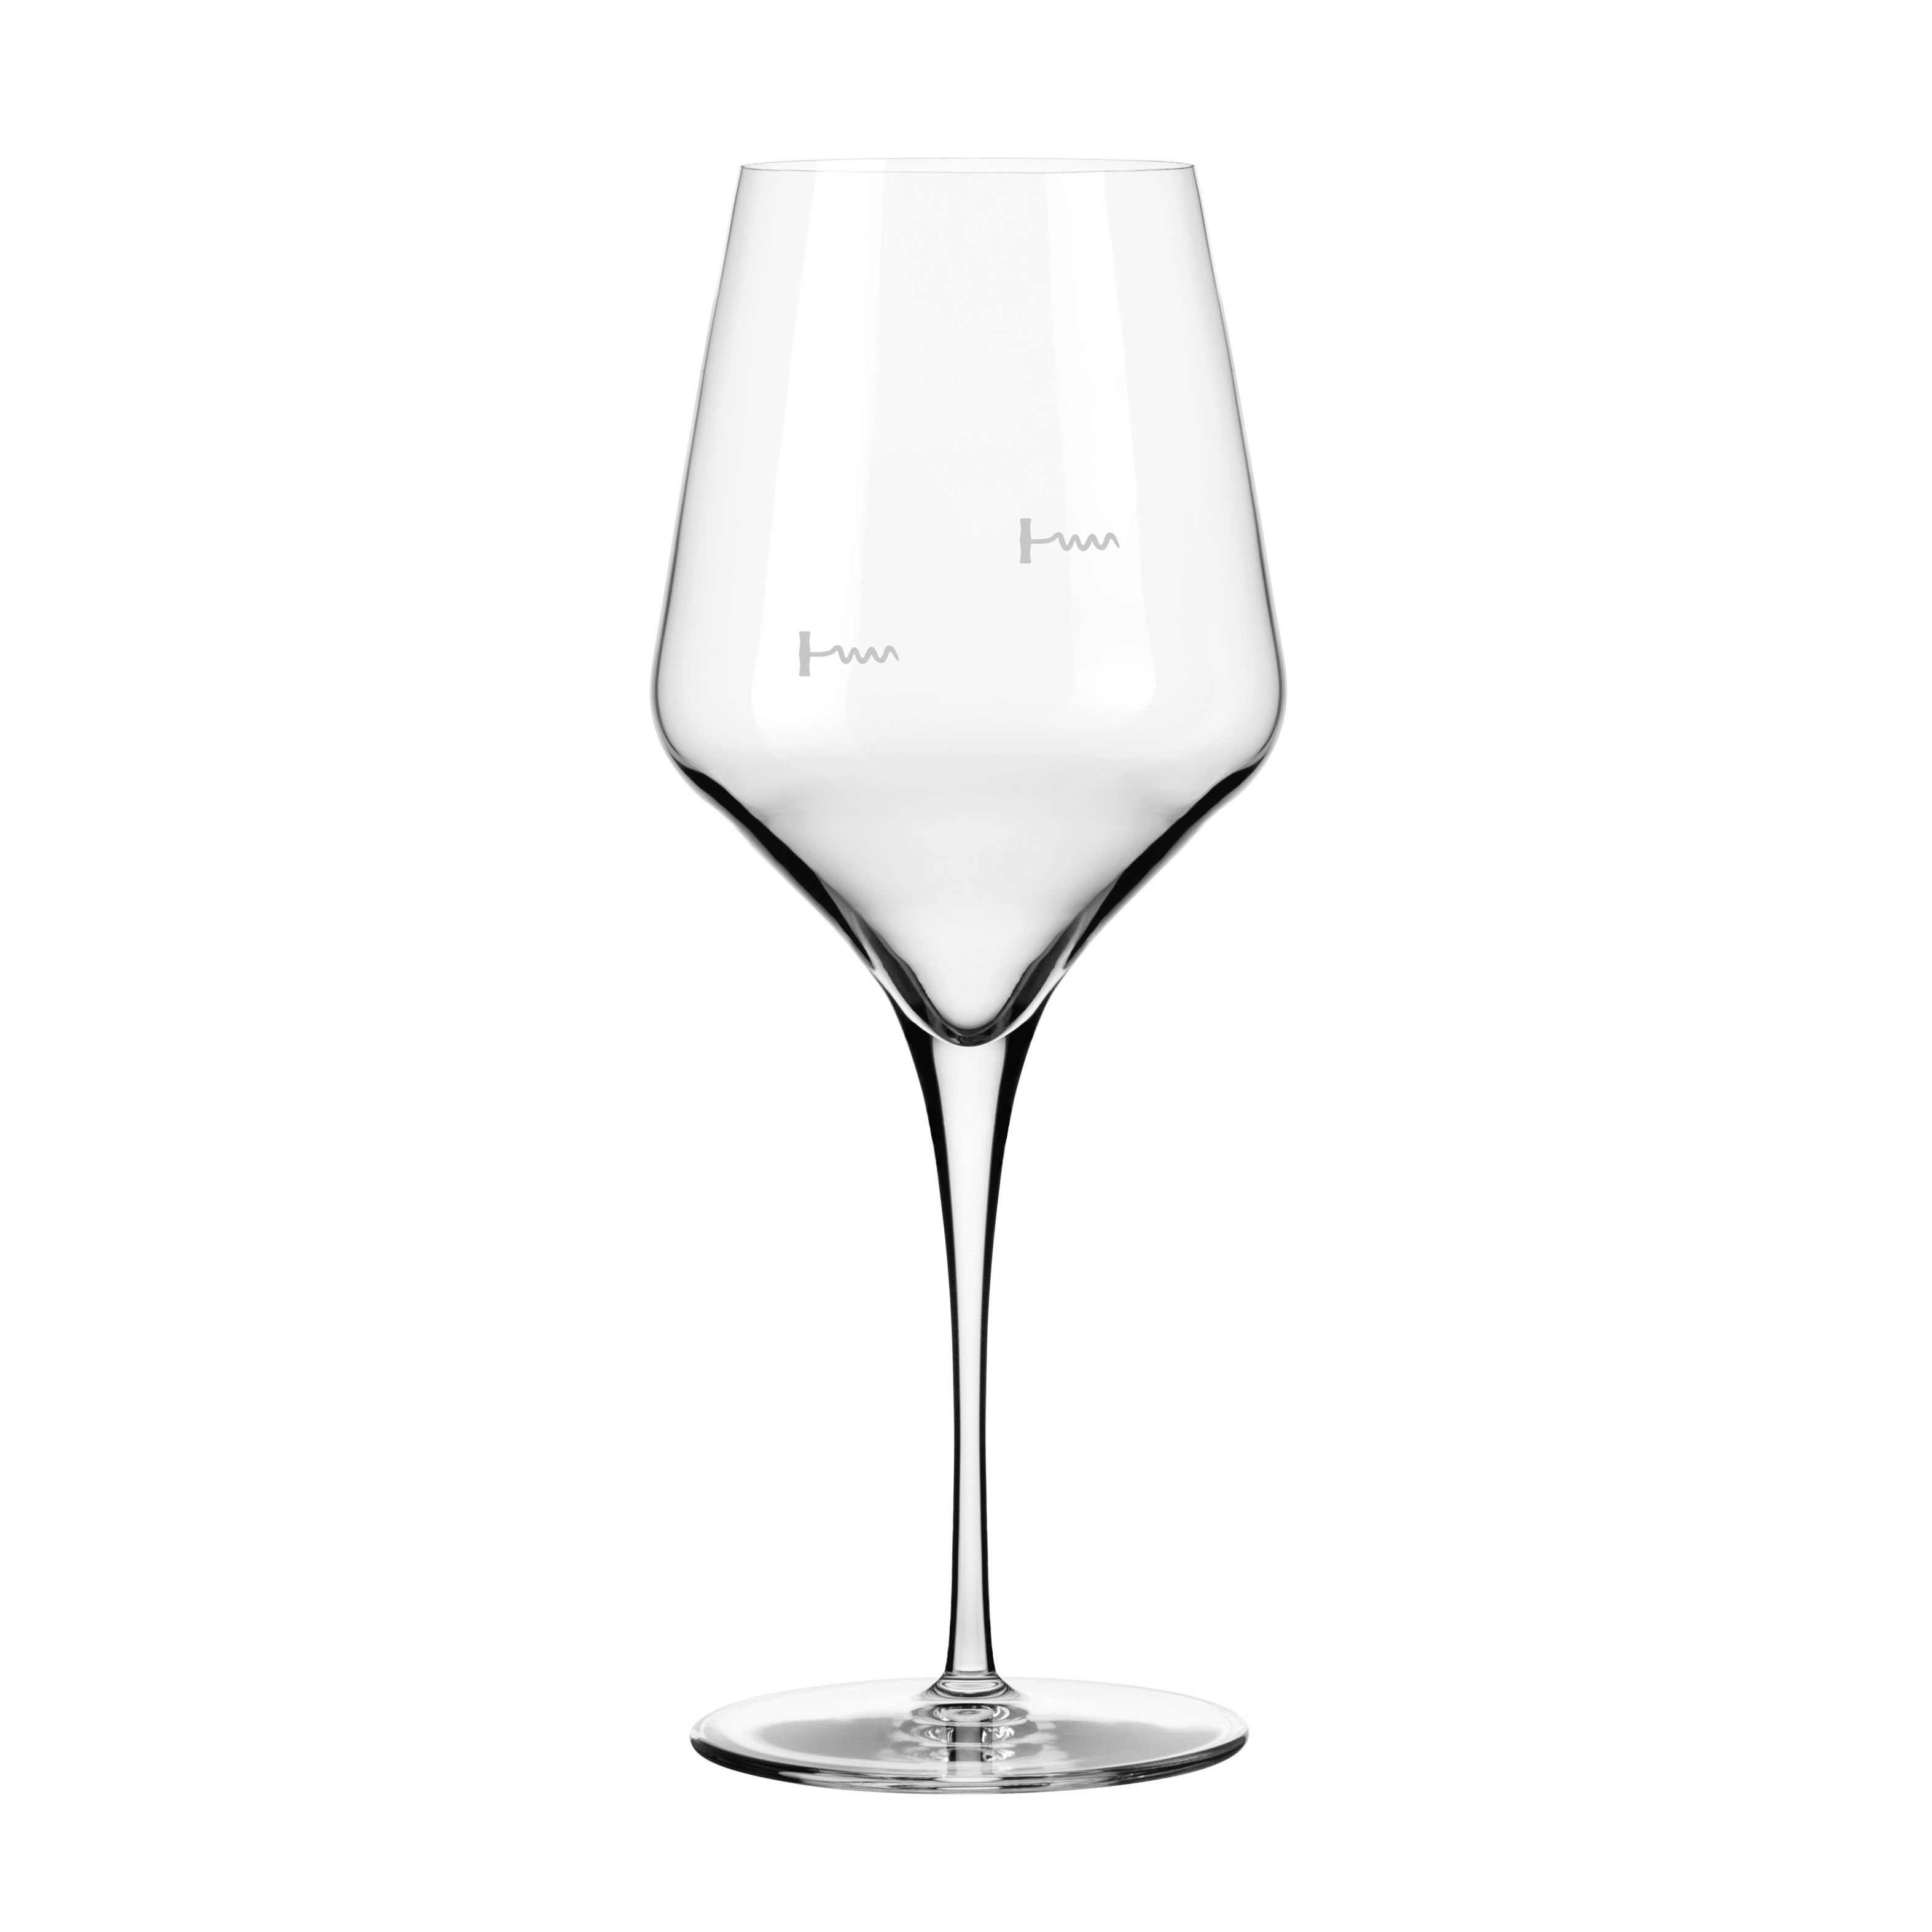 Libbey Glass 9323/U224A glass, wine